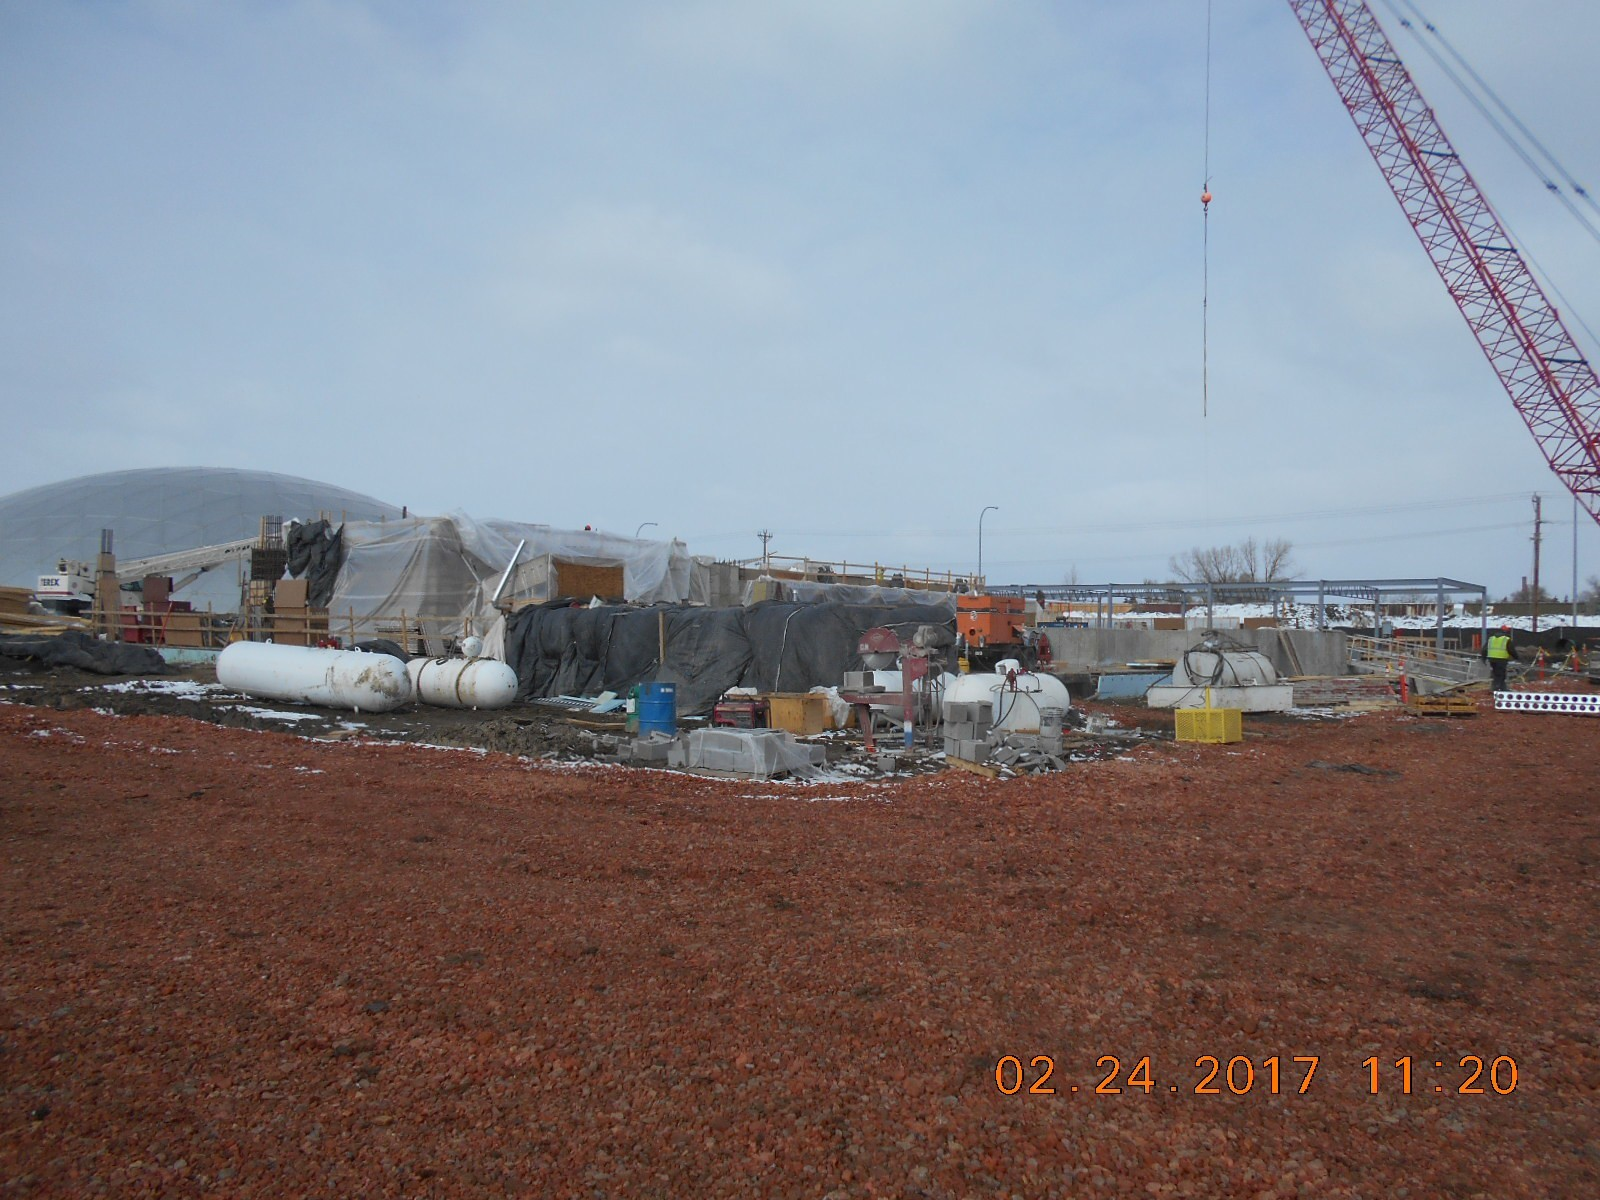 Looking Northwest at the construction site.